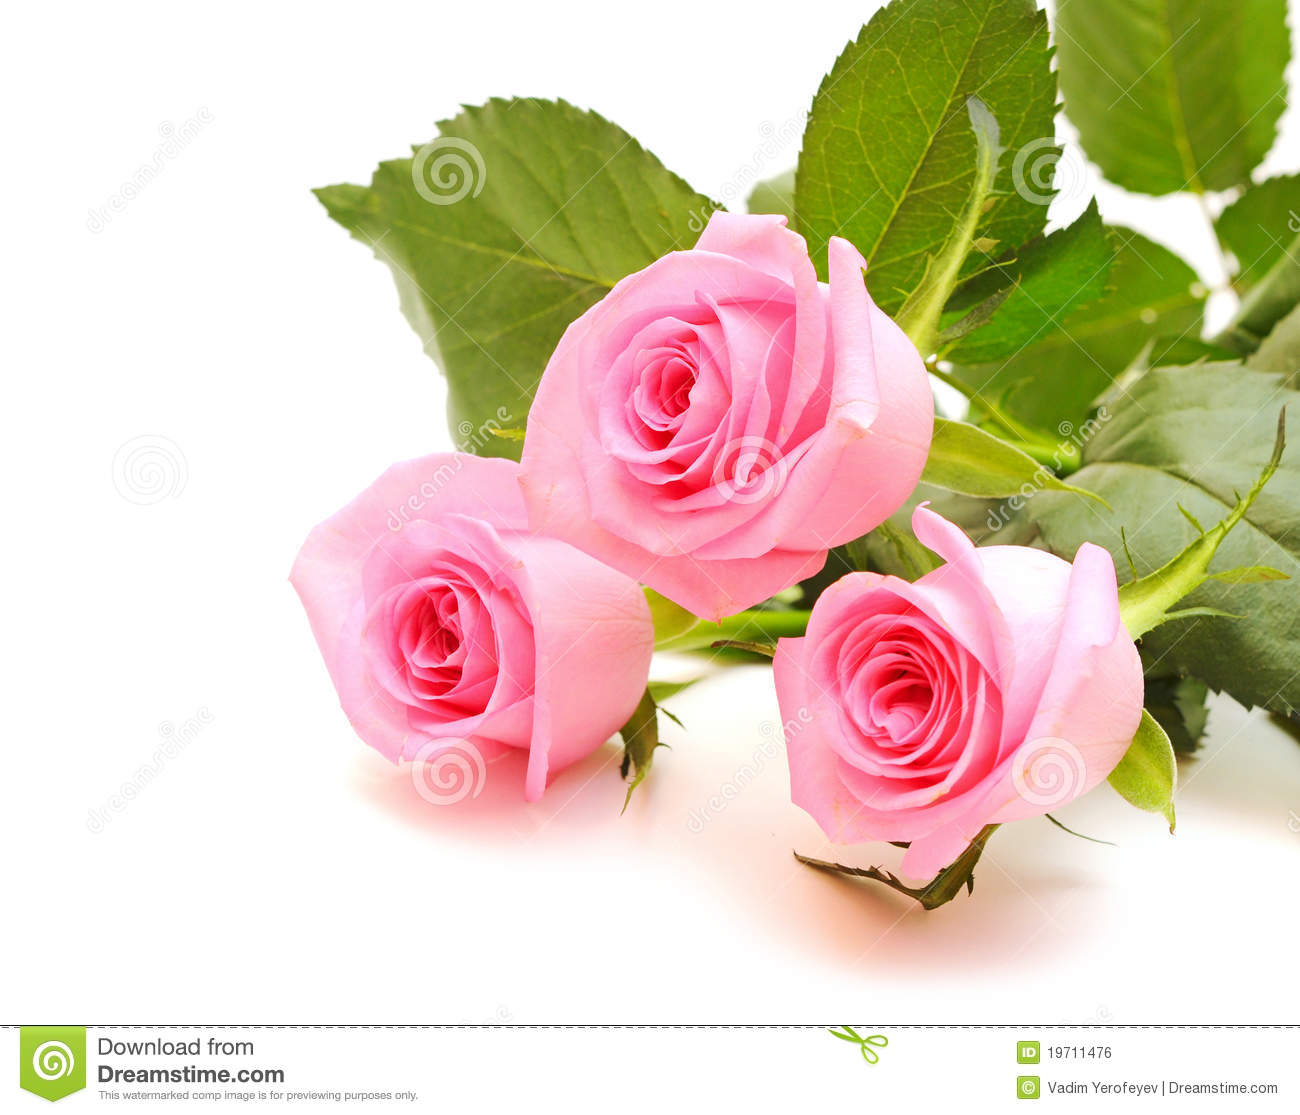 Flower of pink roses stock photo image of focus leaf 19711476 royalty free stock photo mightylinksfo